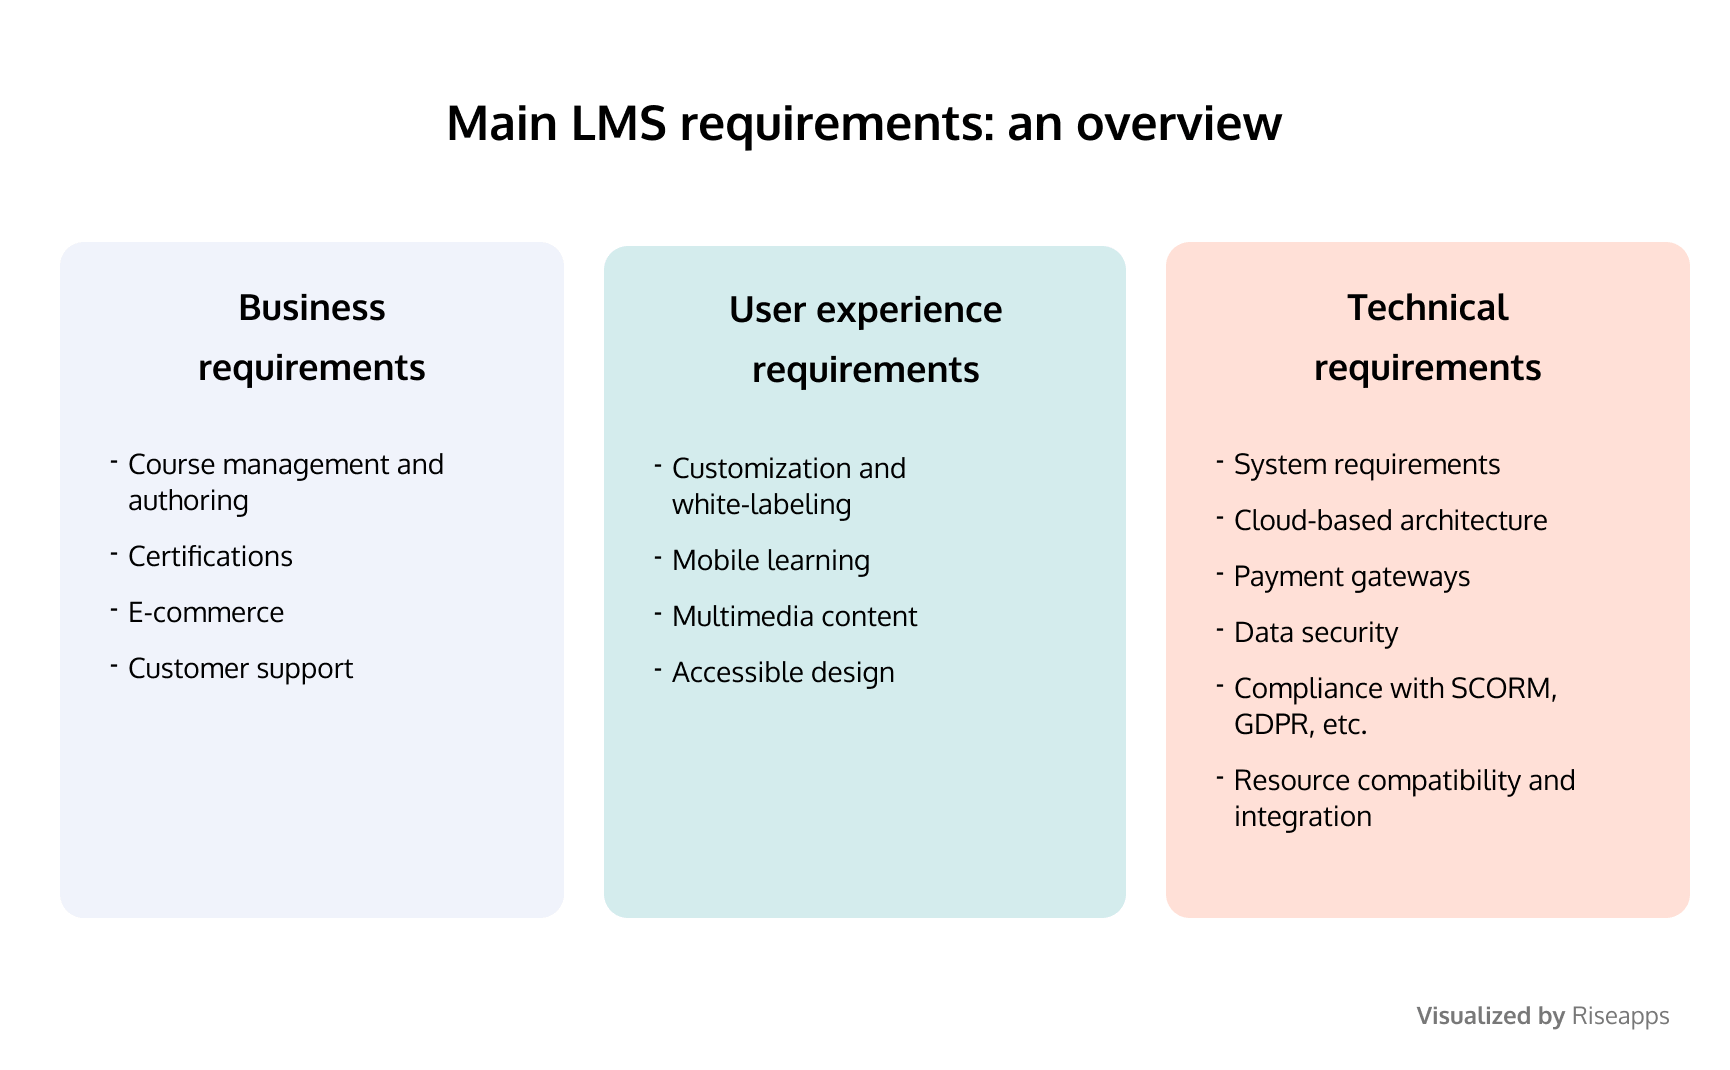 LMS requirements document: a learning management system requirements checklist